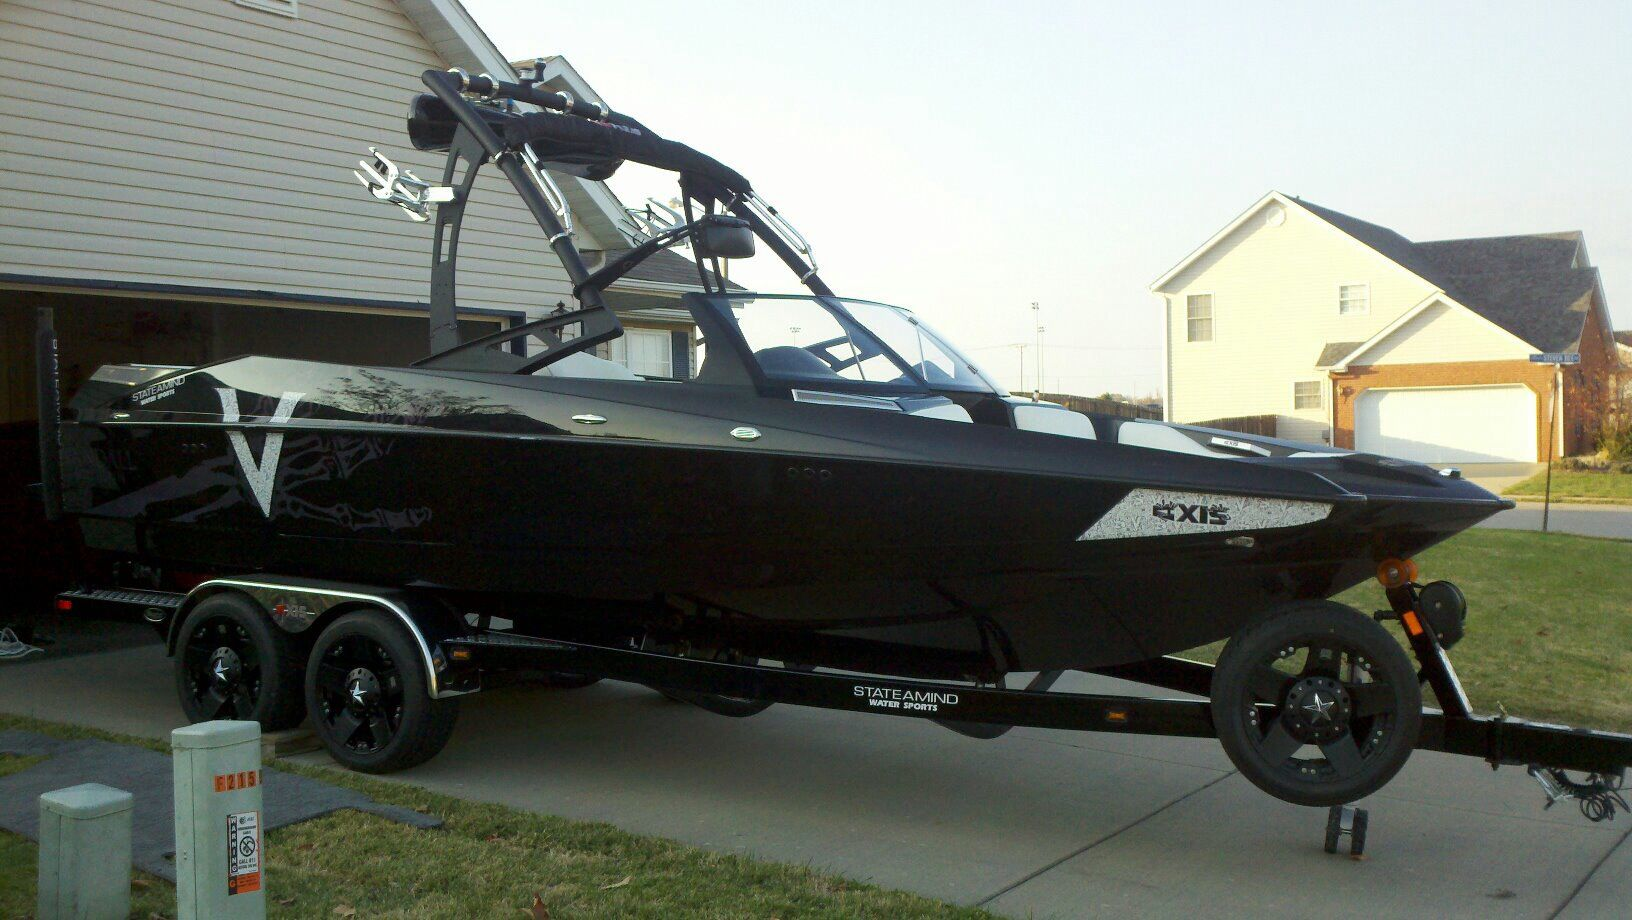 My boyfriend's brother's boat, Axis A22 Vandal Edition